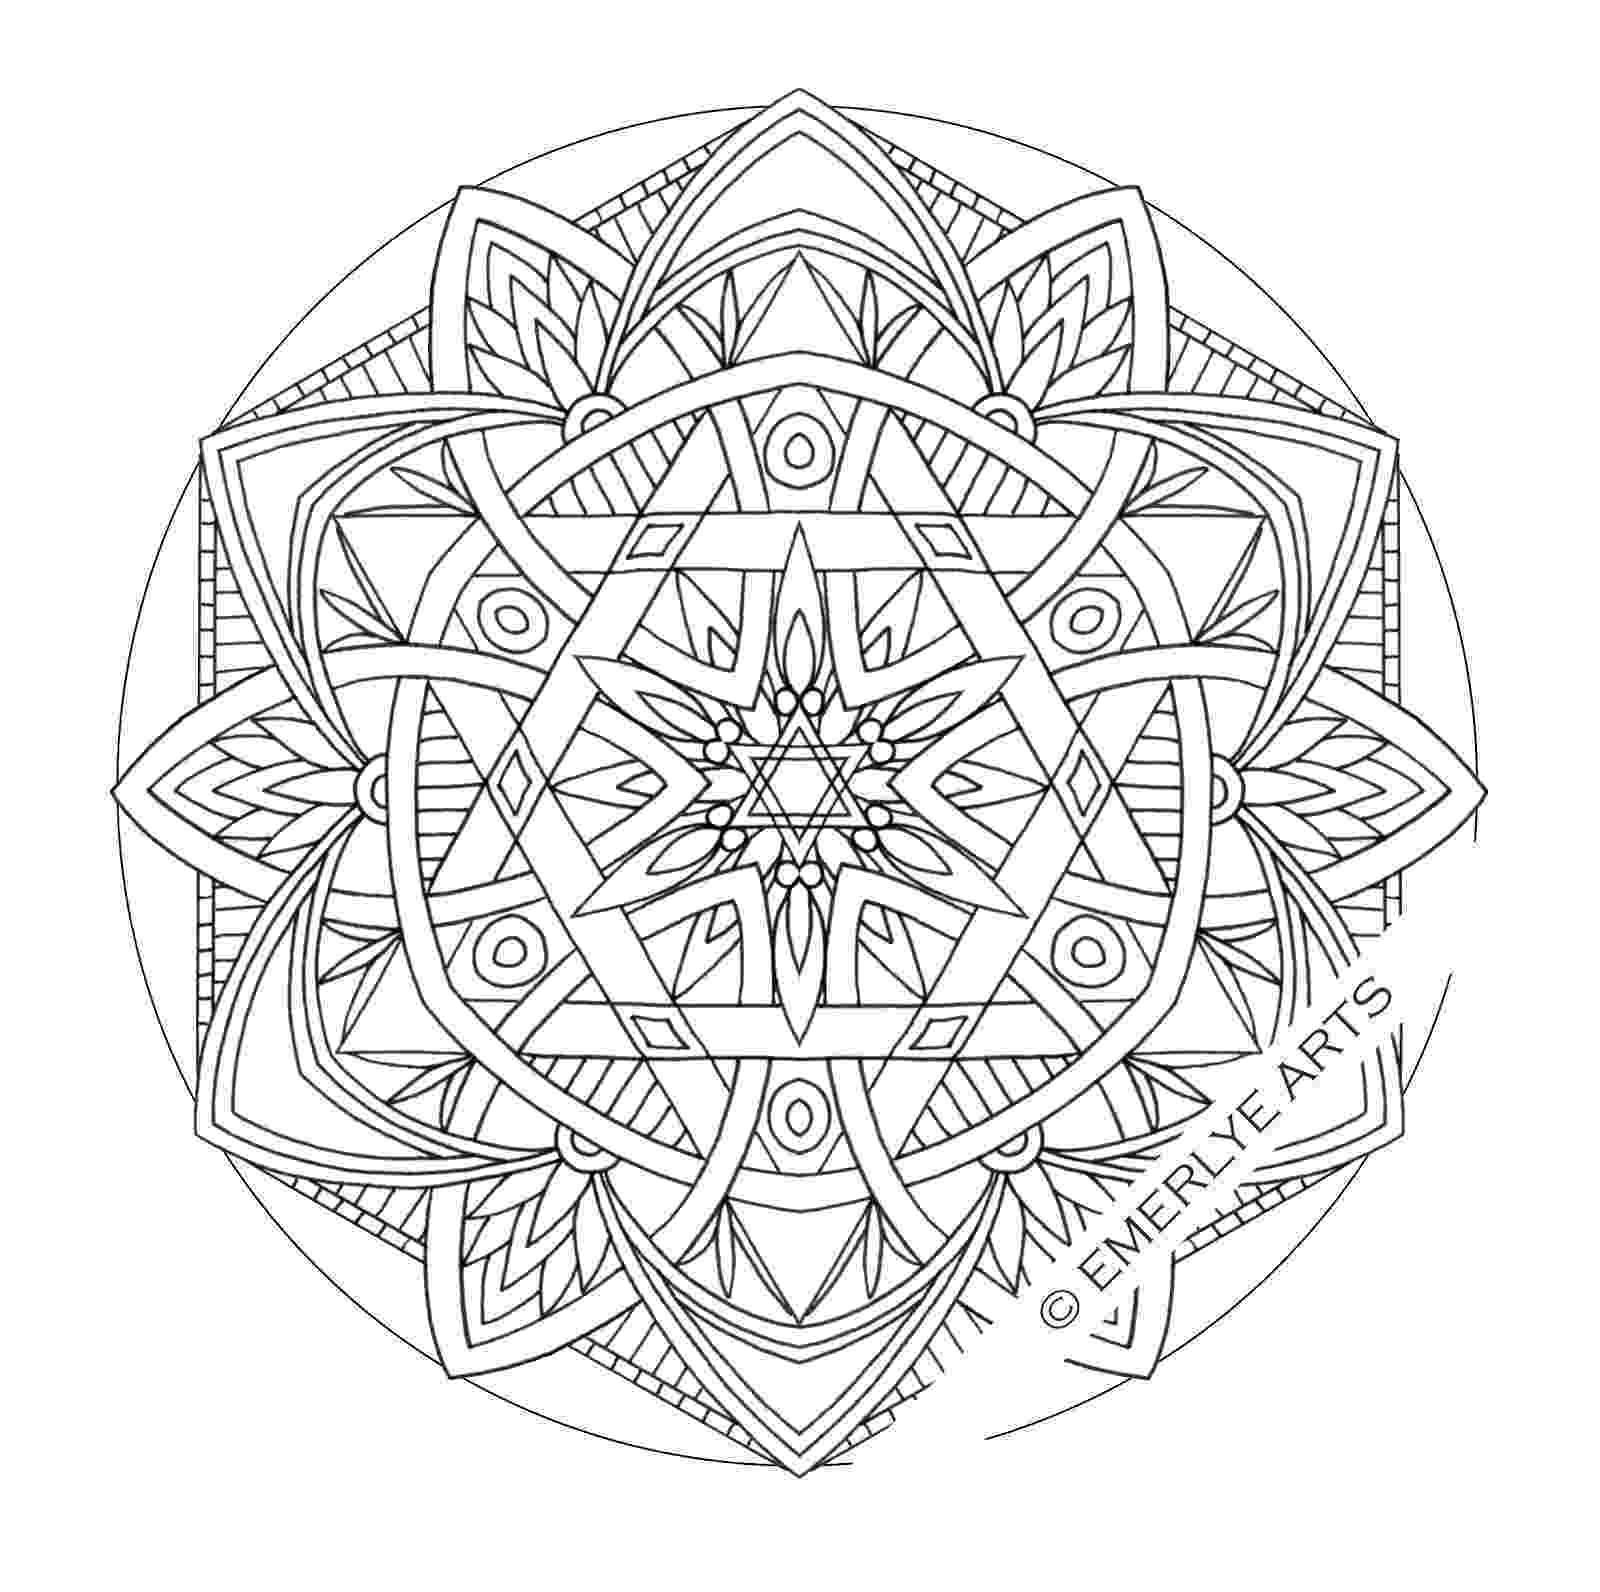 simple mandalas to color free printable mandalas for kids best coloring pages for to mandalas simple color